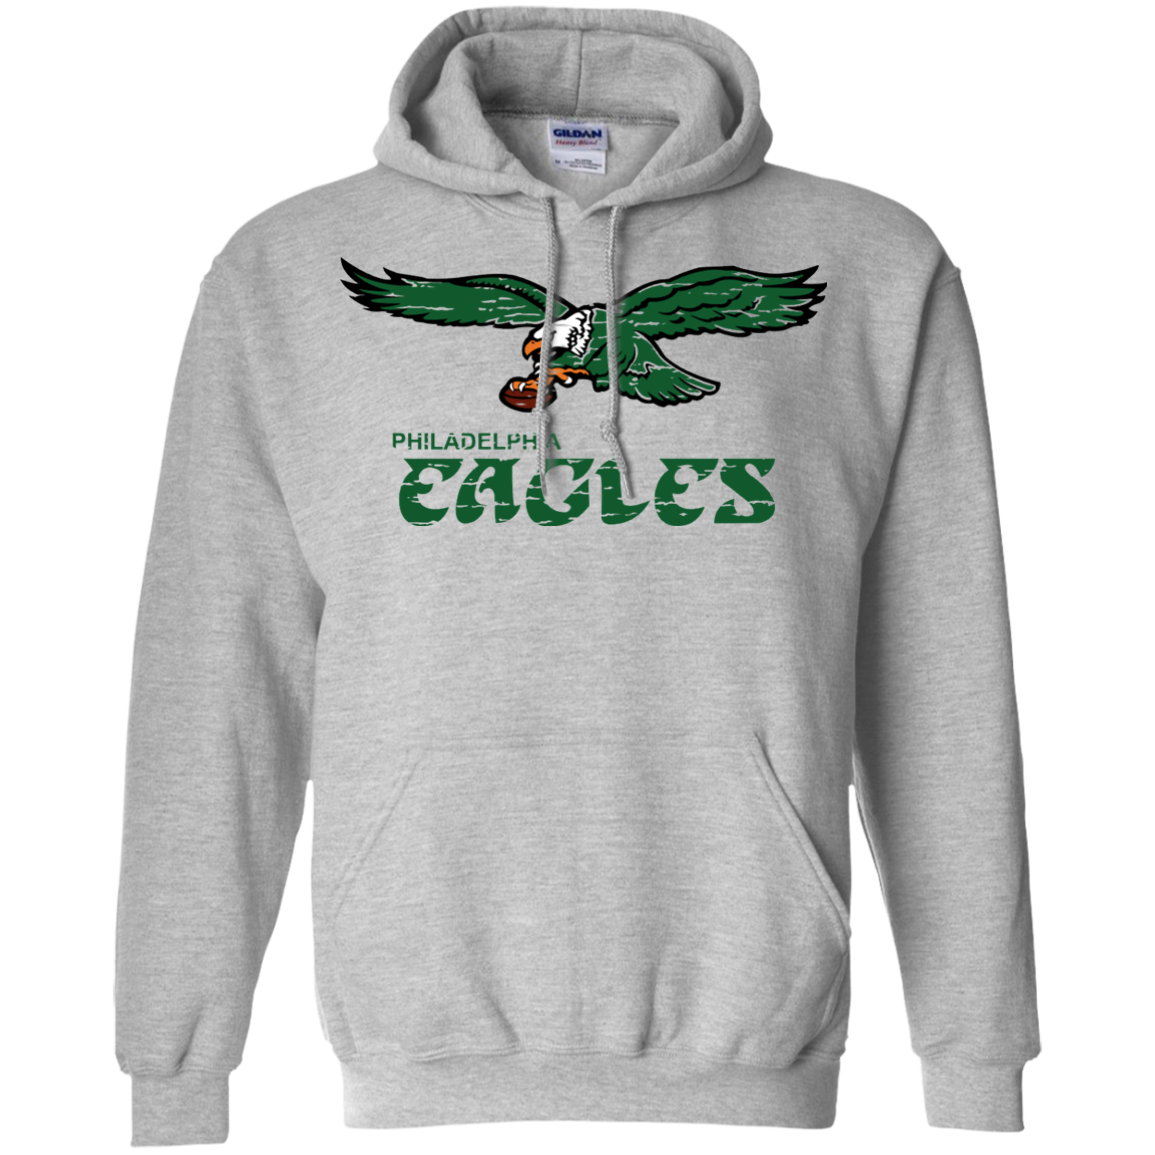 Retro Philadelphia Eagles Inspired Pullover Hoodie - Generation T